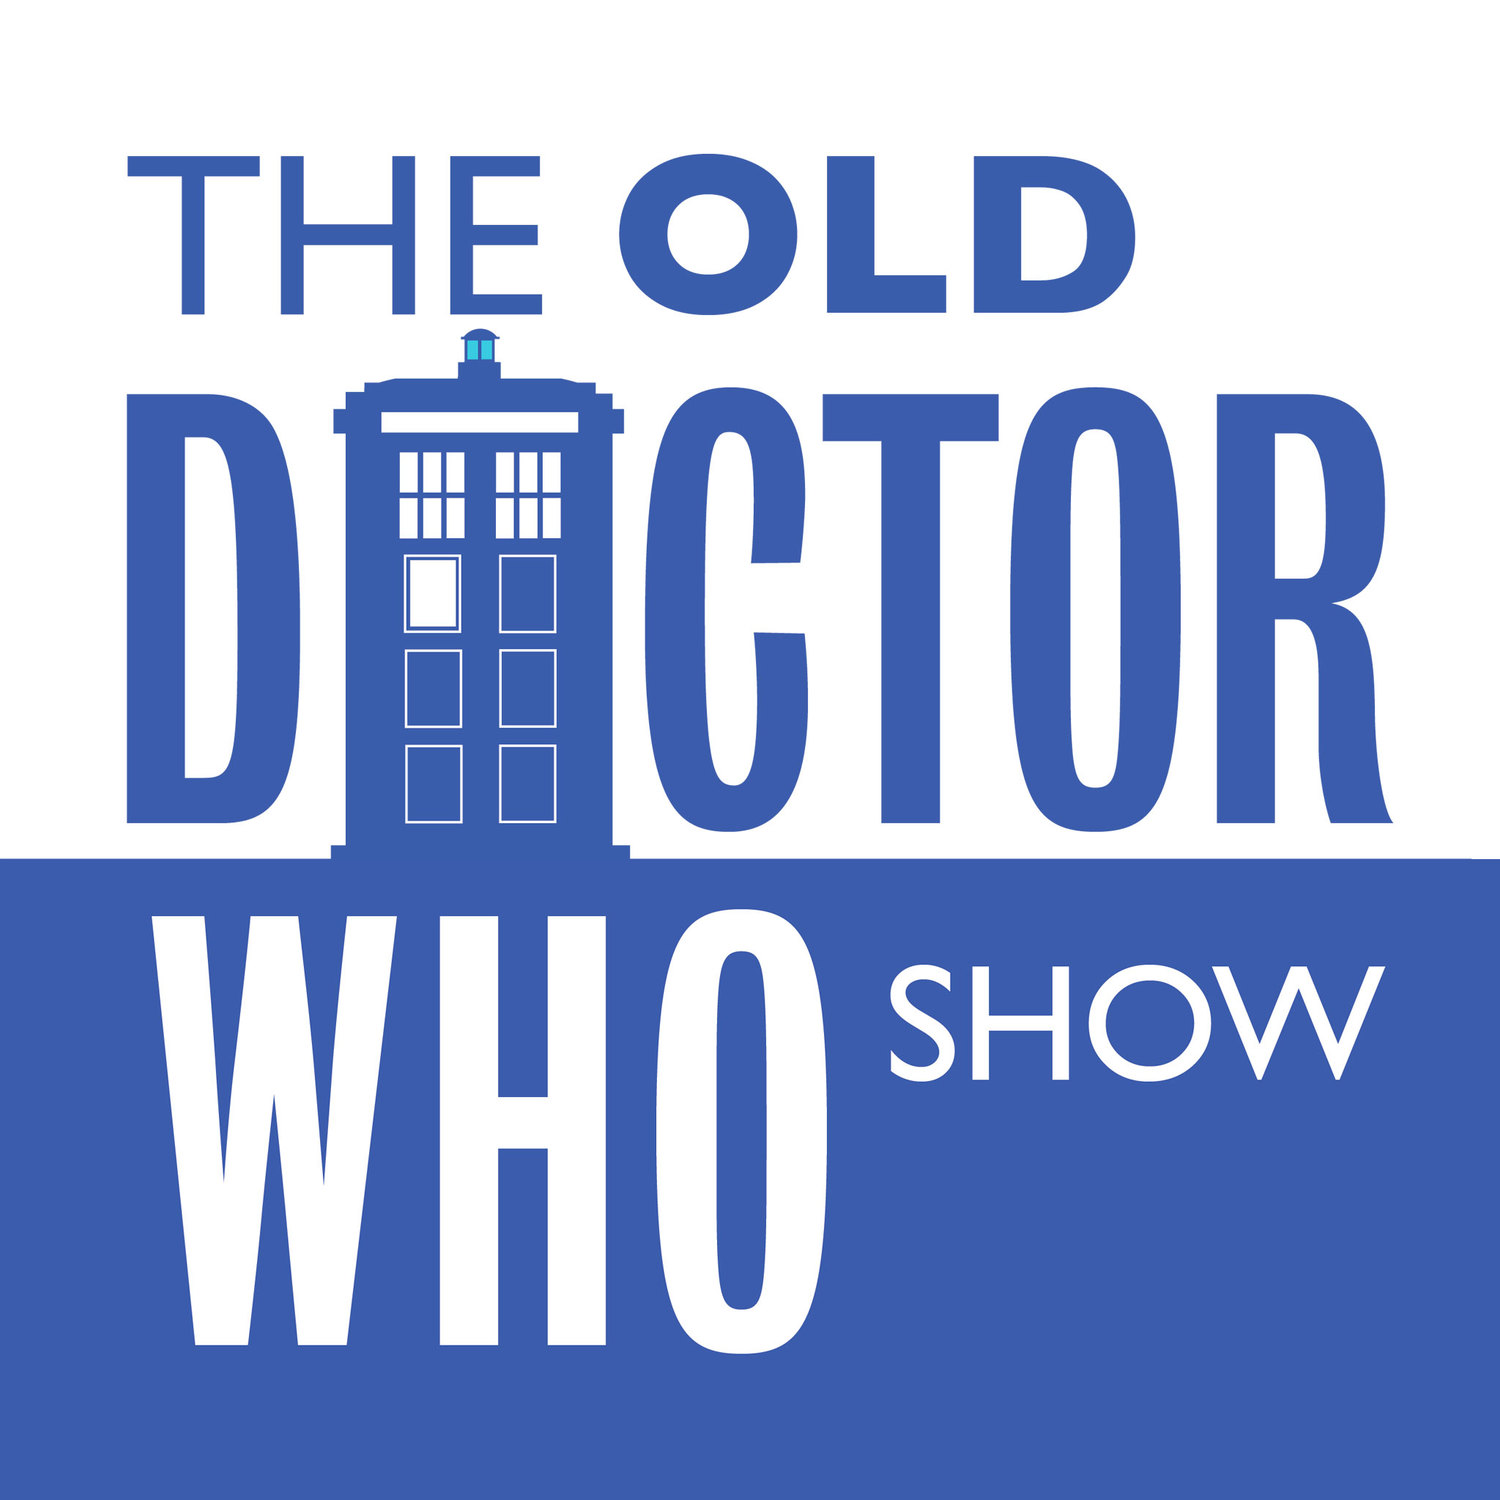 The Old Doctor Who Show